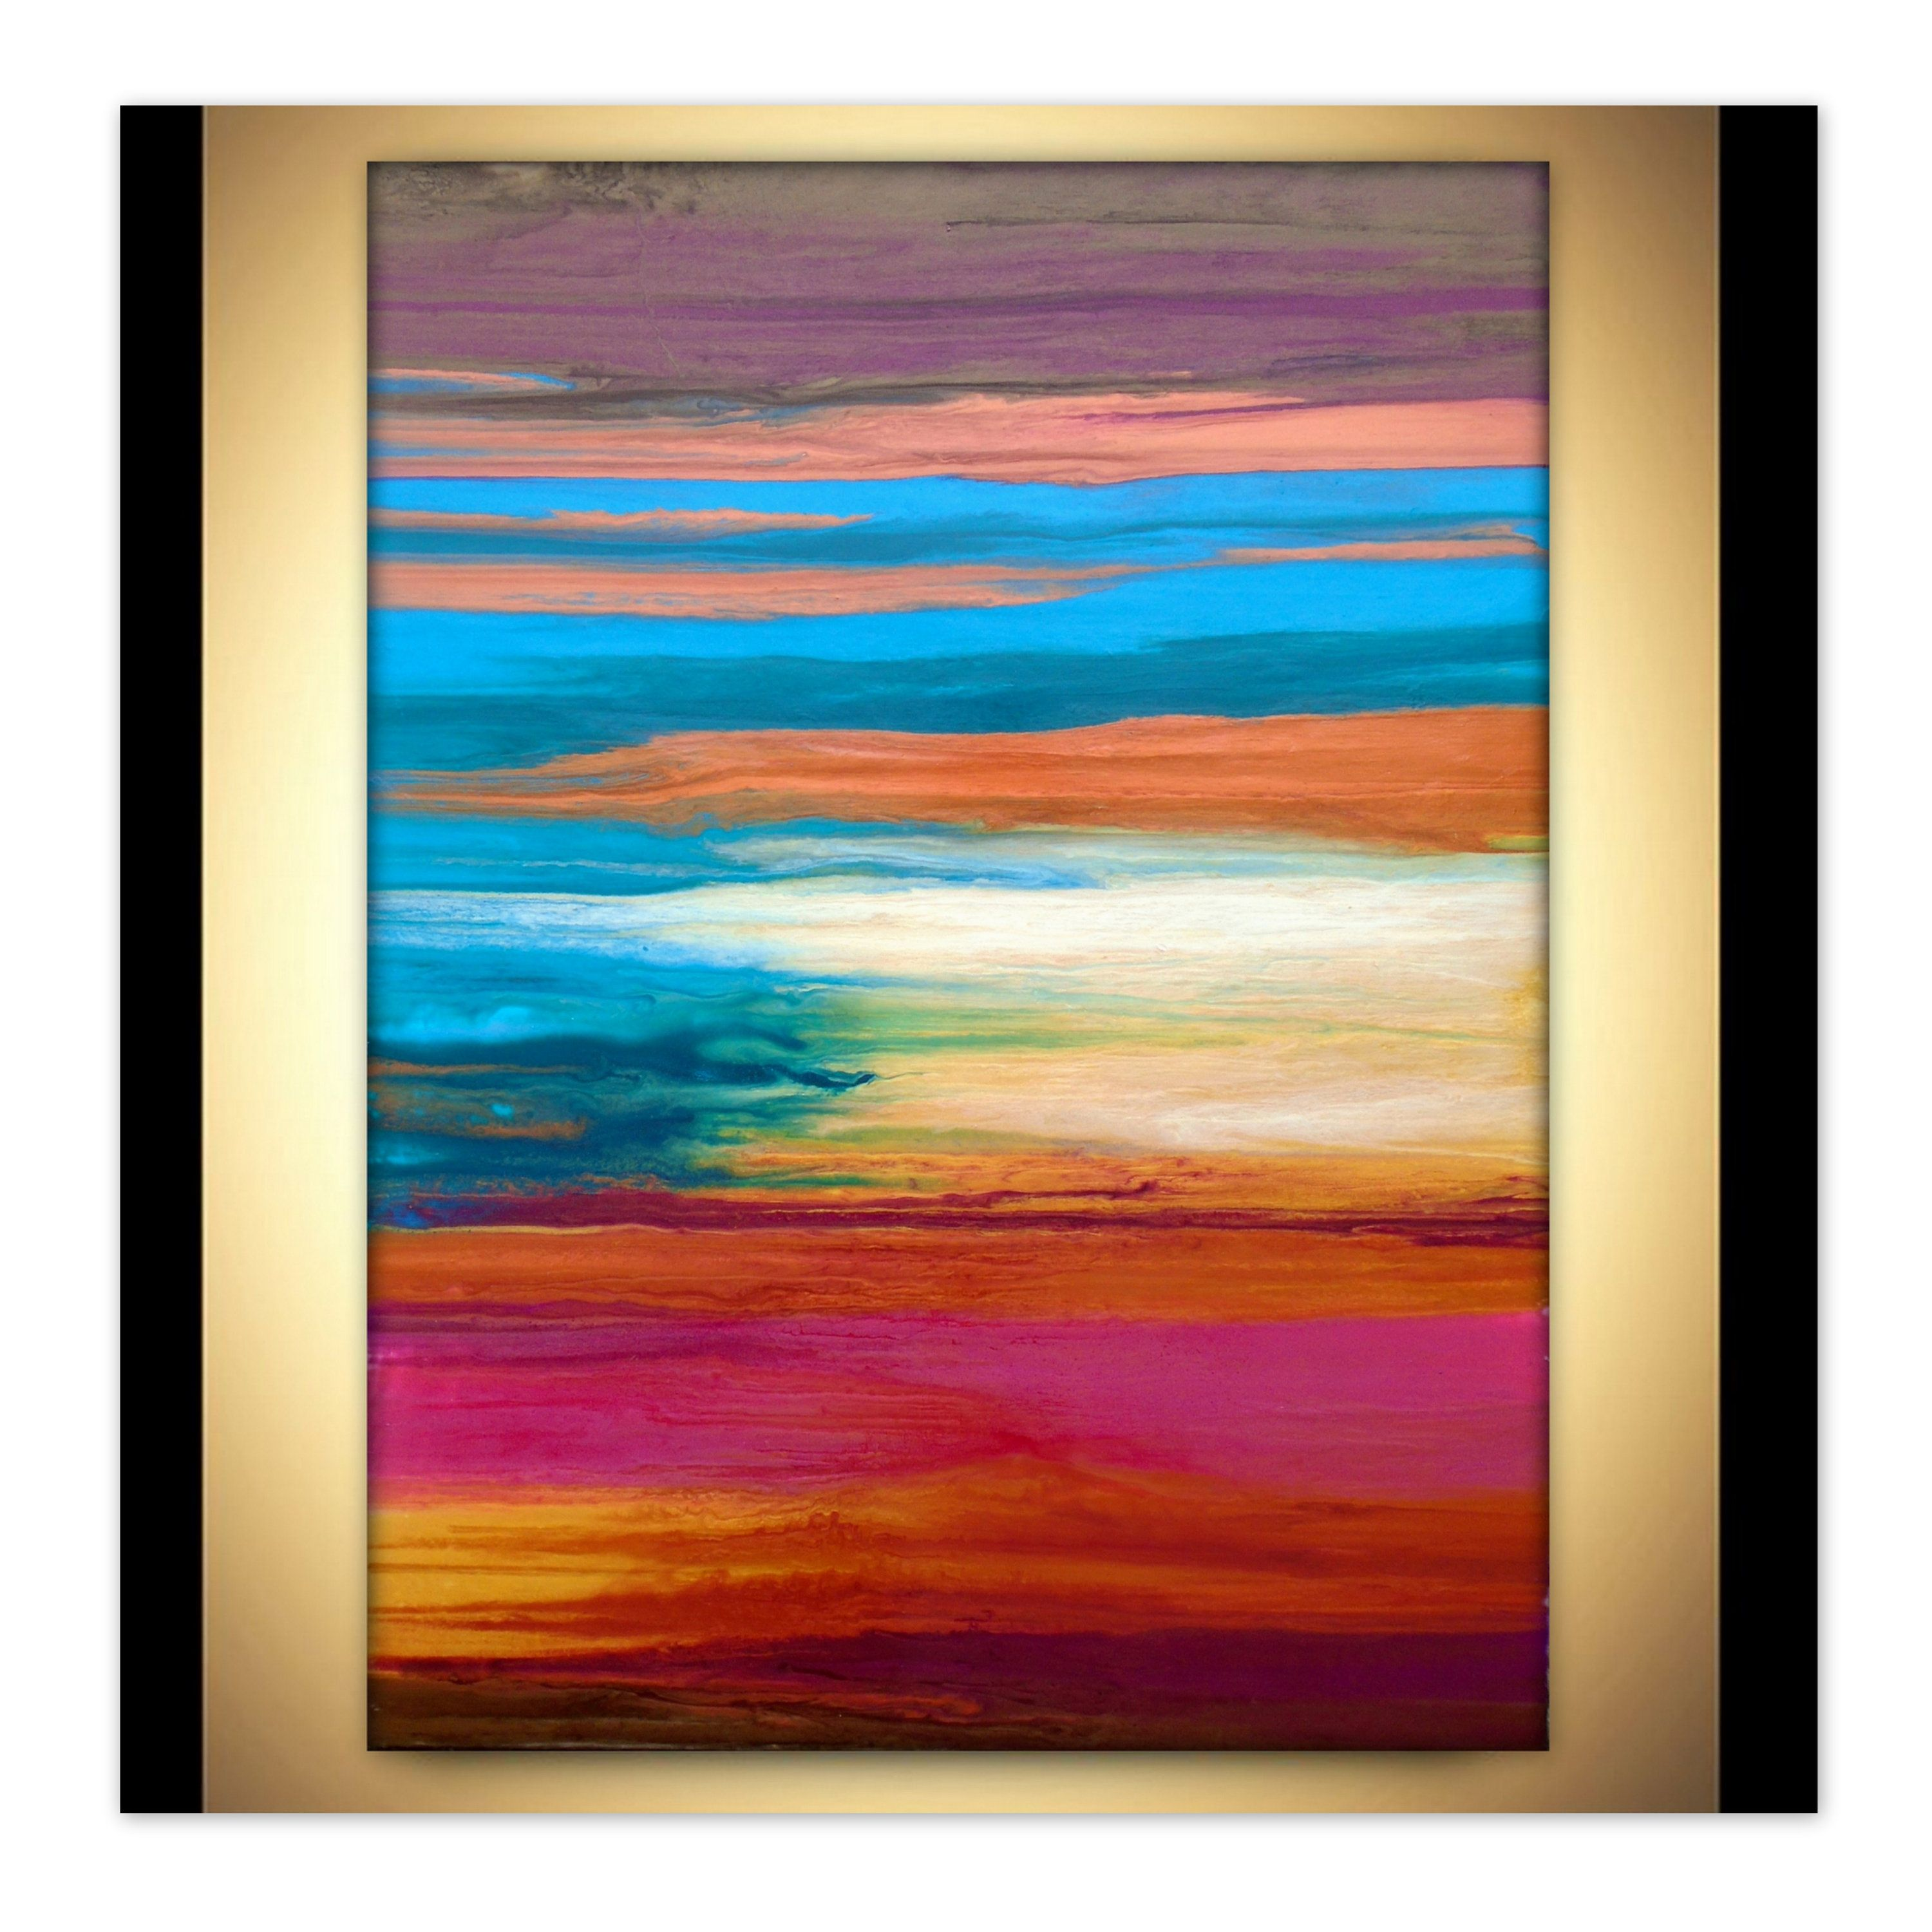 Large Wall Art Fluid Abstract Contemporary Original Poured Sunset Landscape Painting Summ Reflection Painting Abstract Art Painting Sunset Landscape Painting